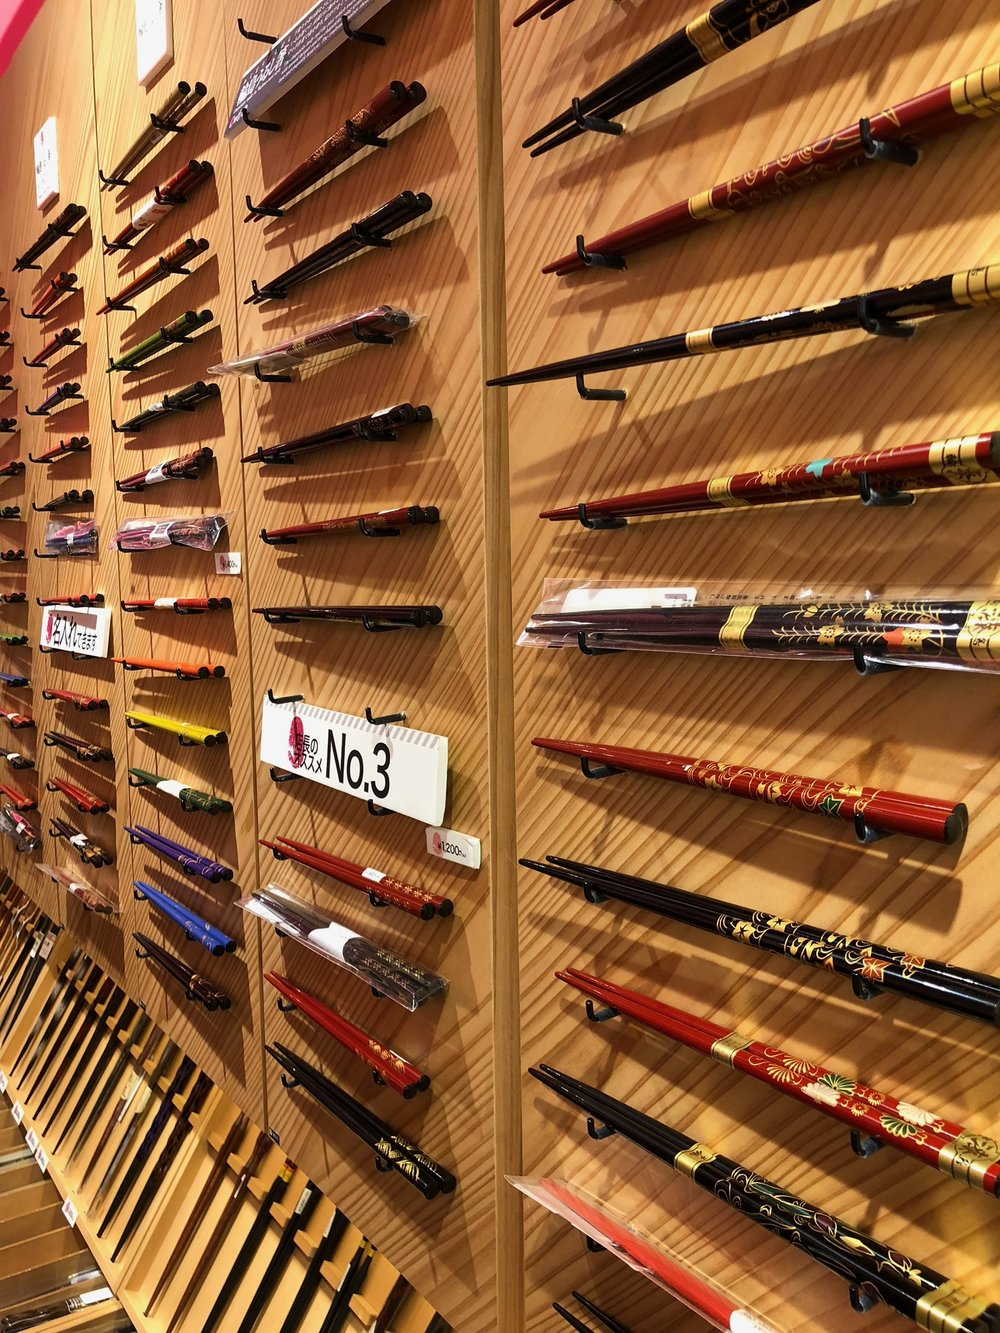 A cute chopstick shop that was very reminiscent of a wand shop you might find in Diagon Alley. We couldn't help ourselves and picked up a few chopsticks rests.